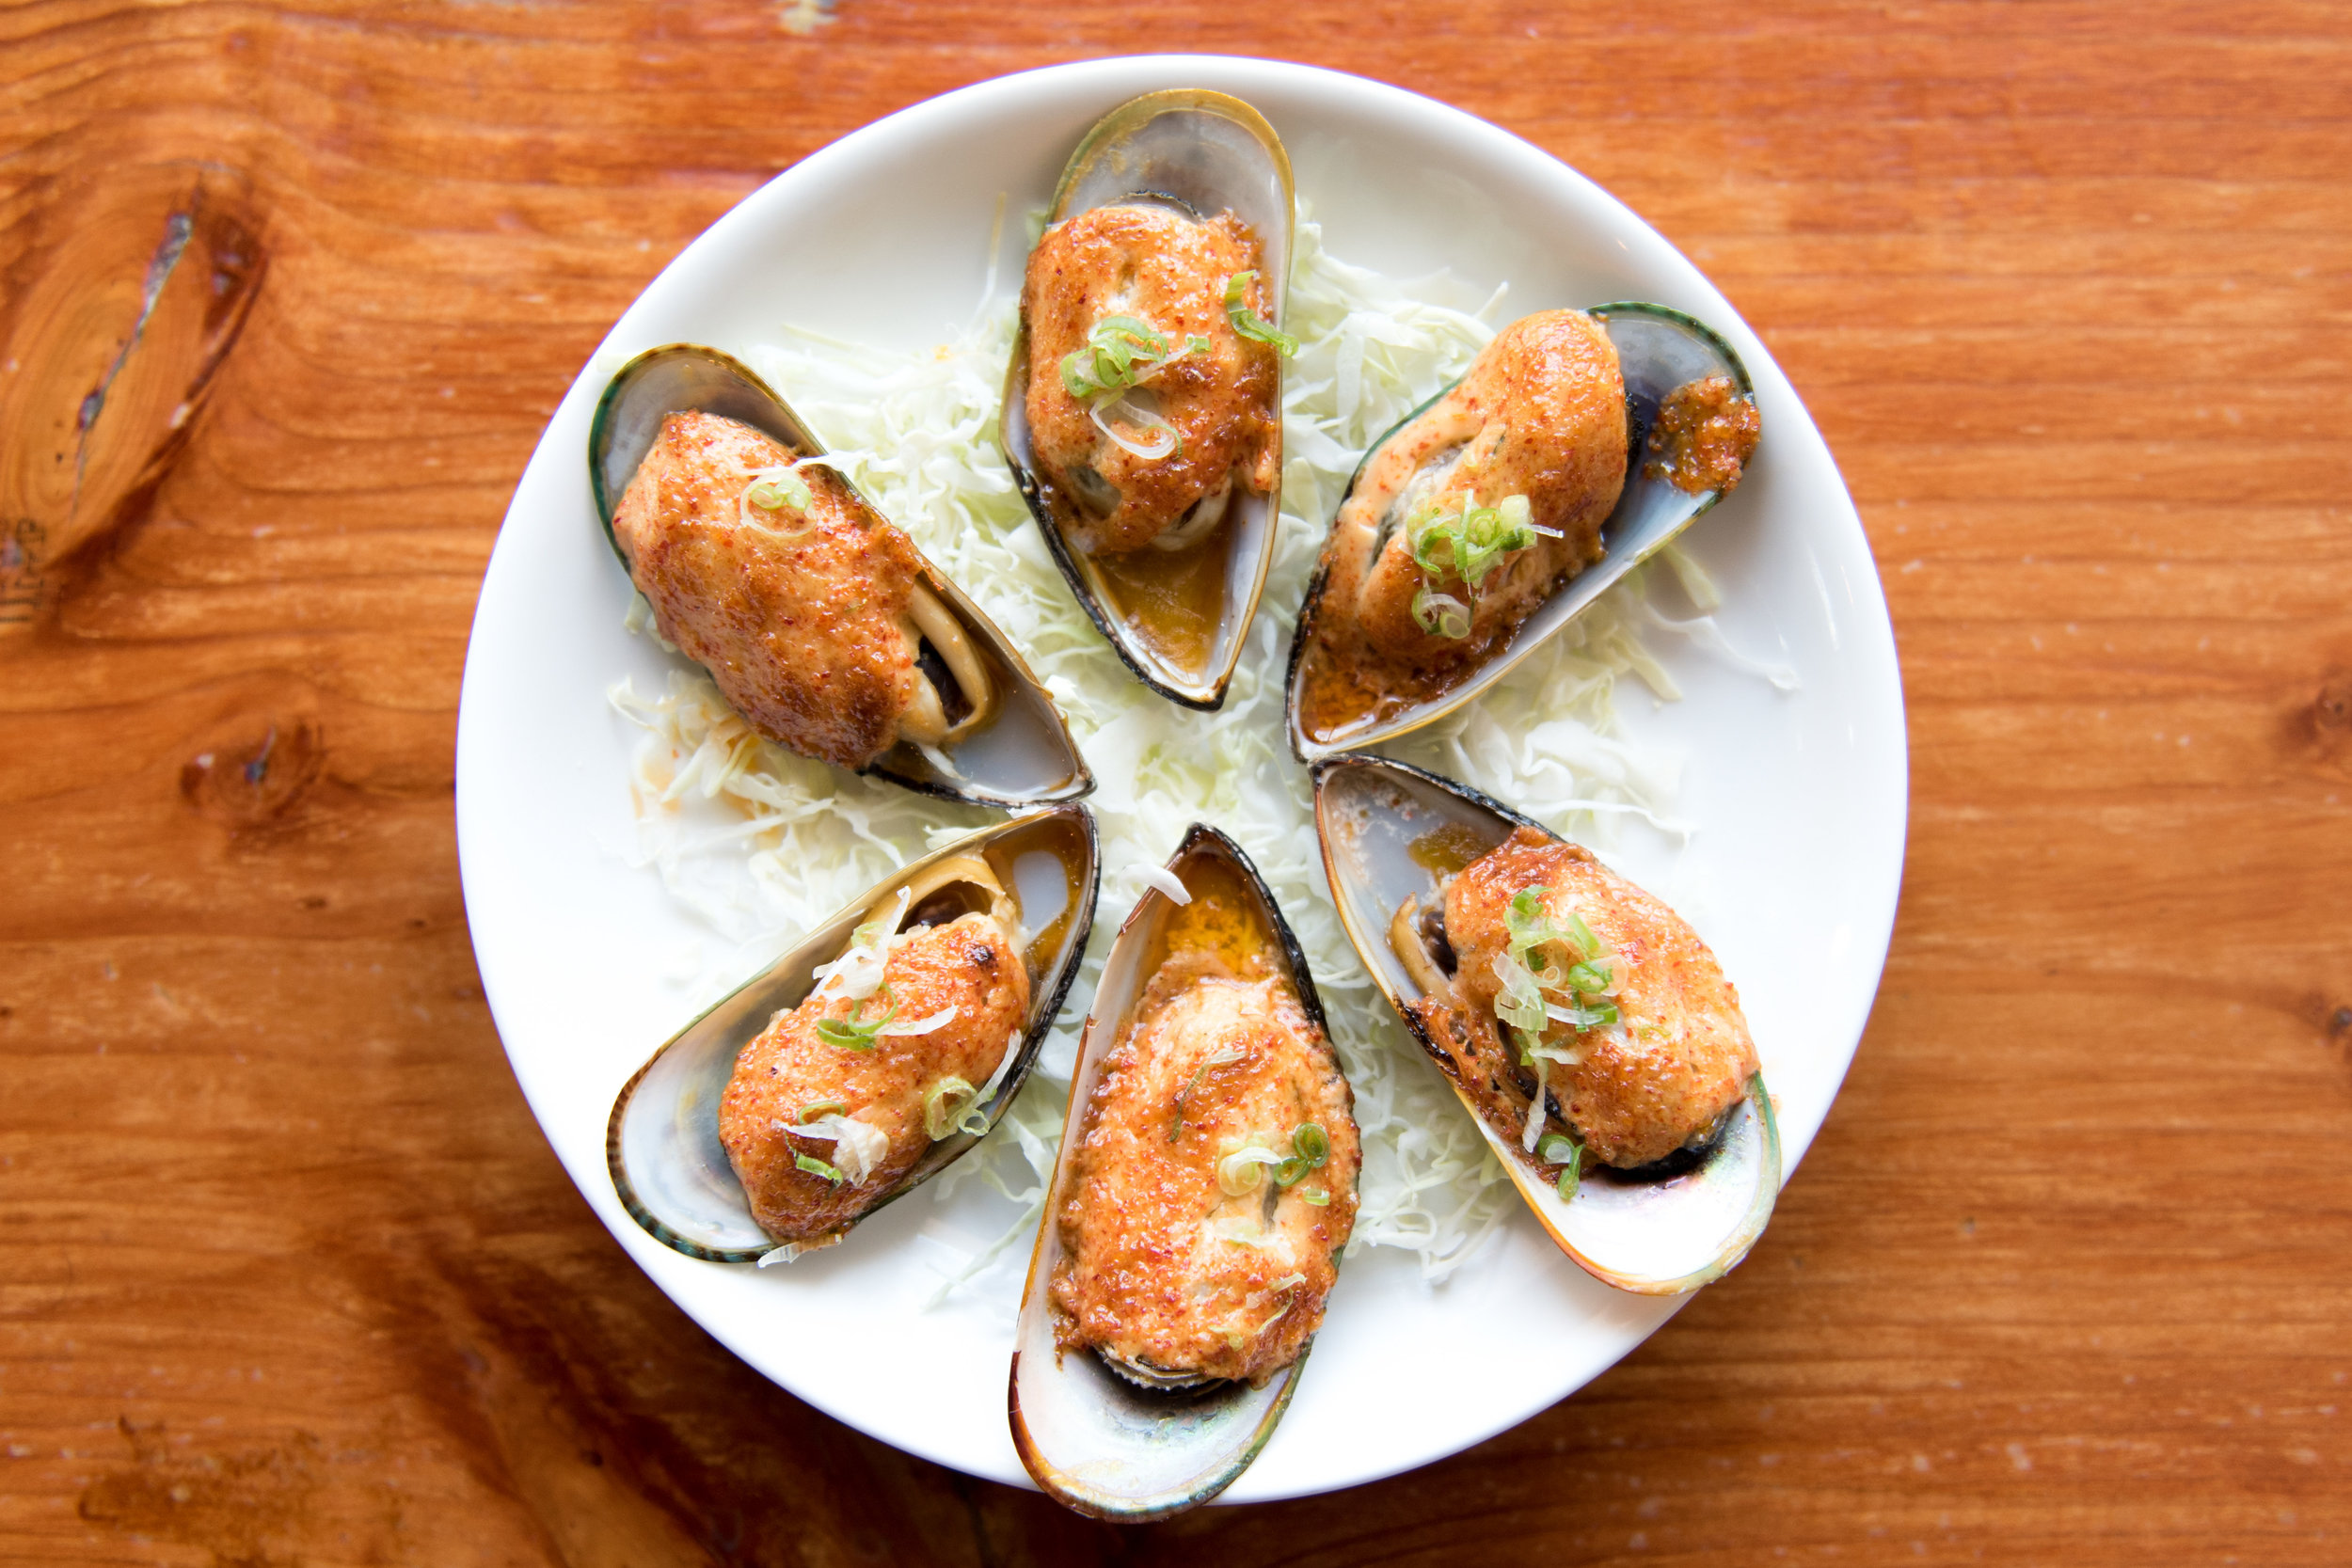 Baked muscles at 808 Sushi in Las Vegas.